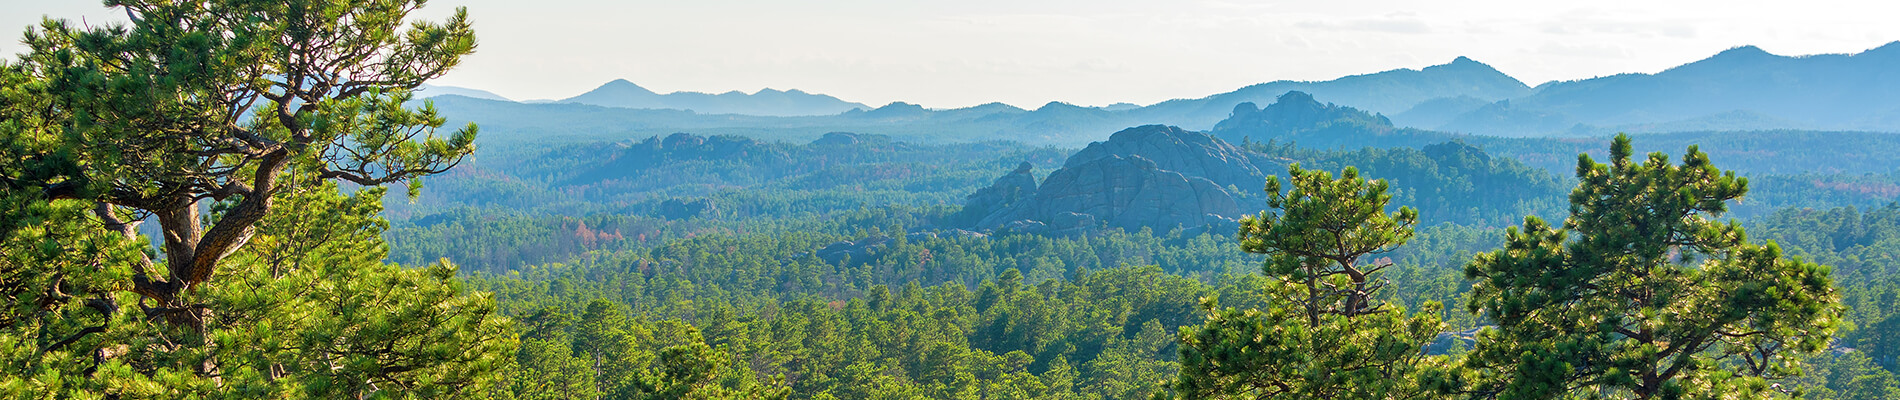 Landscape of the Black Hills